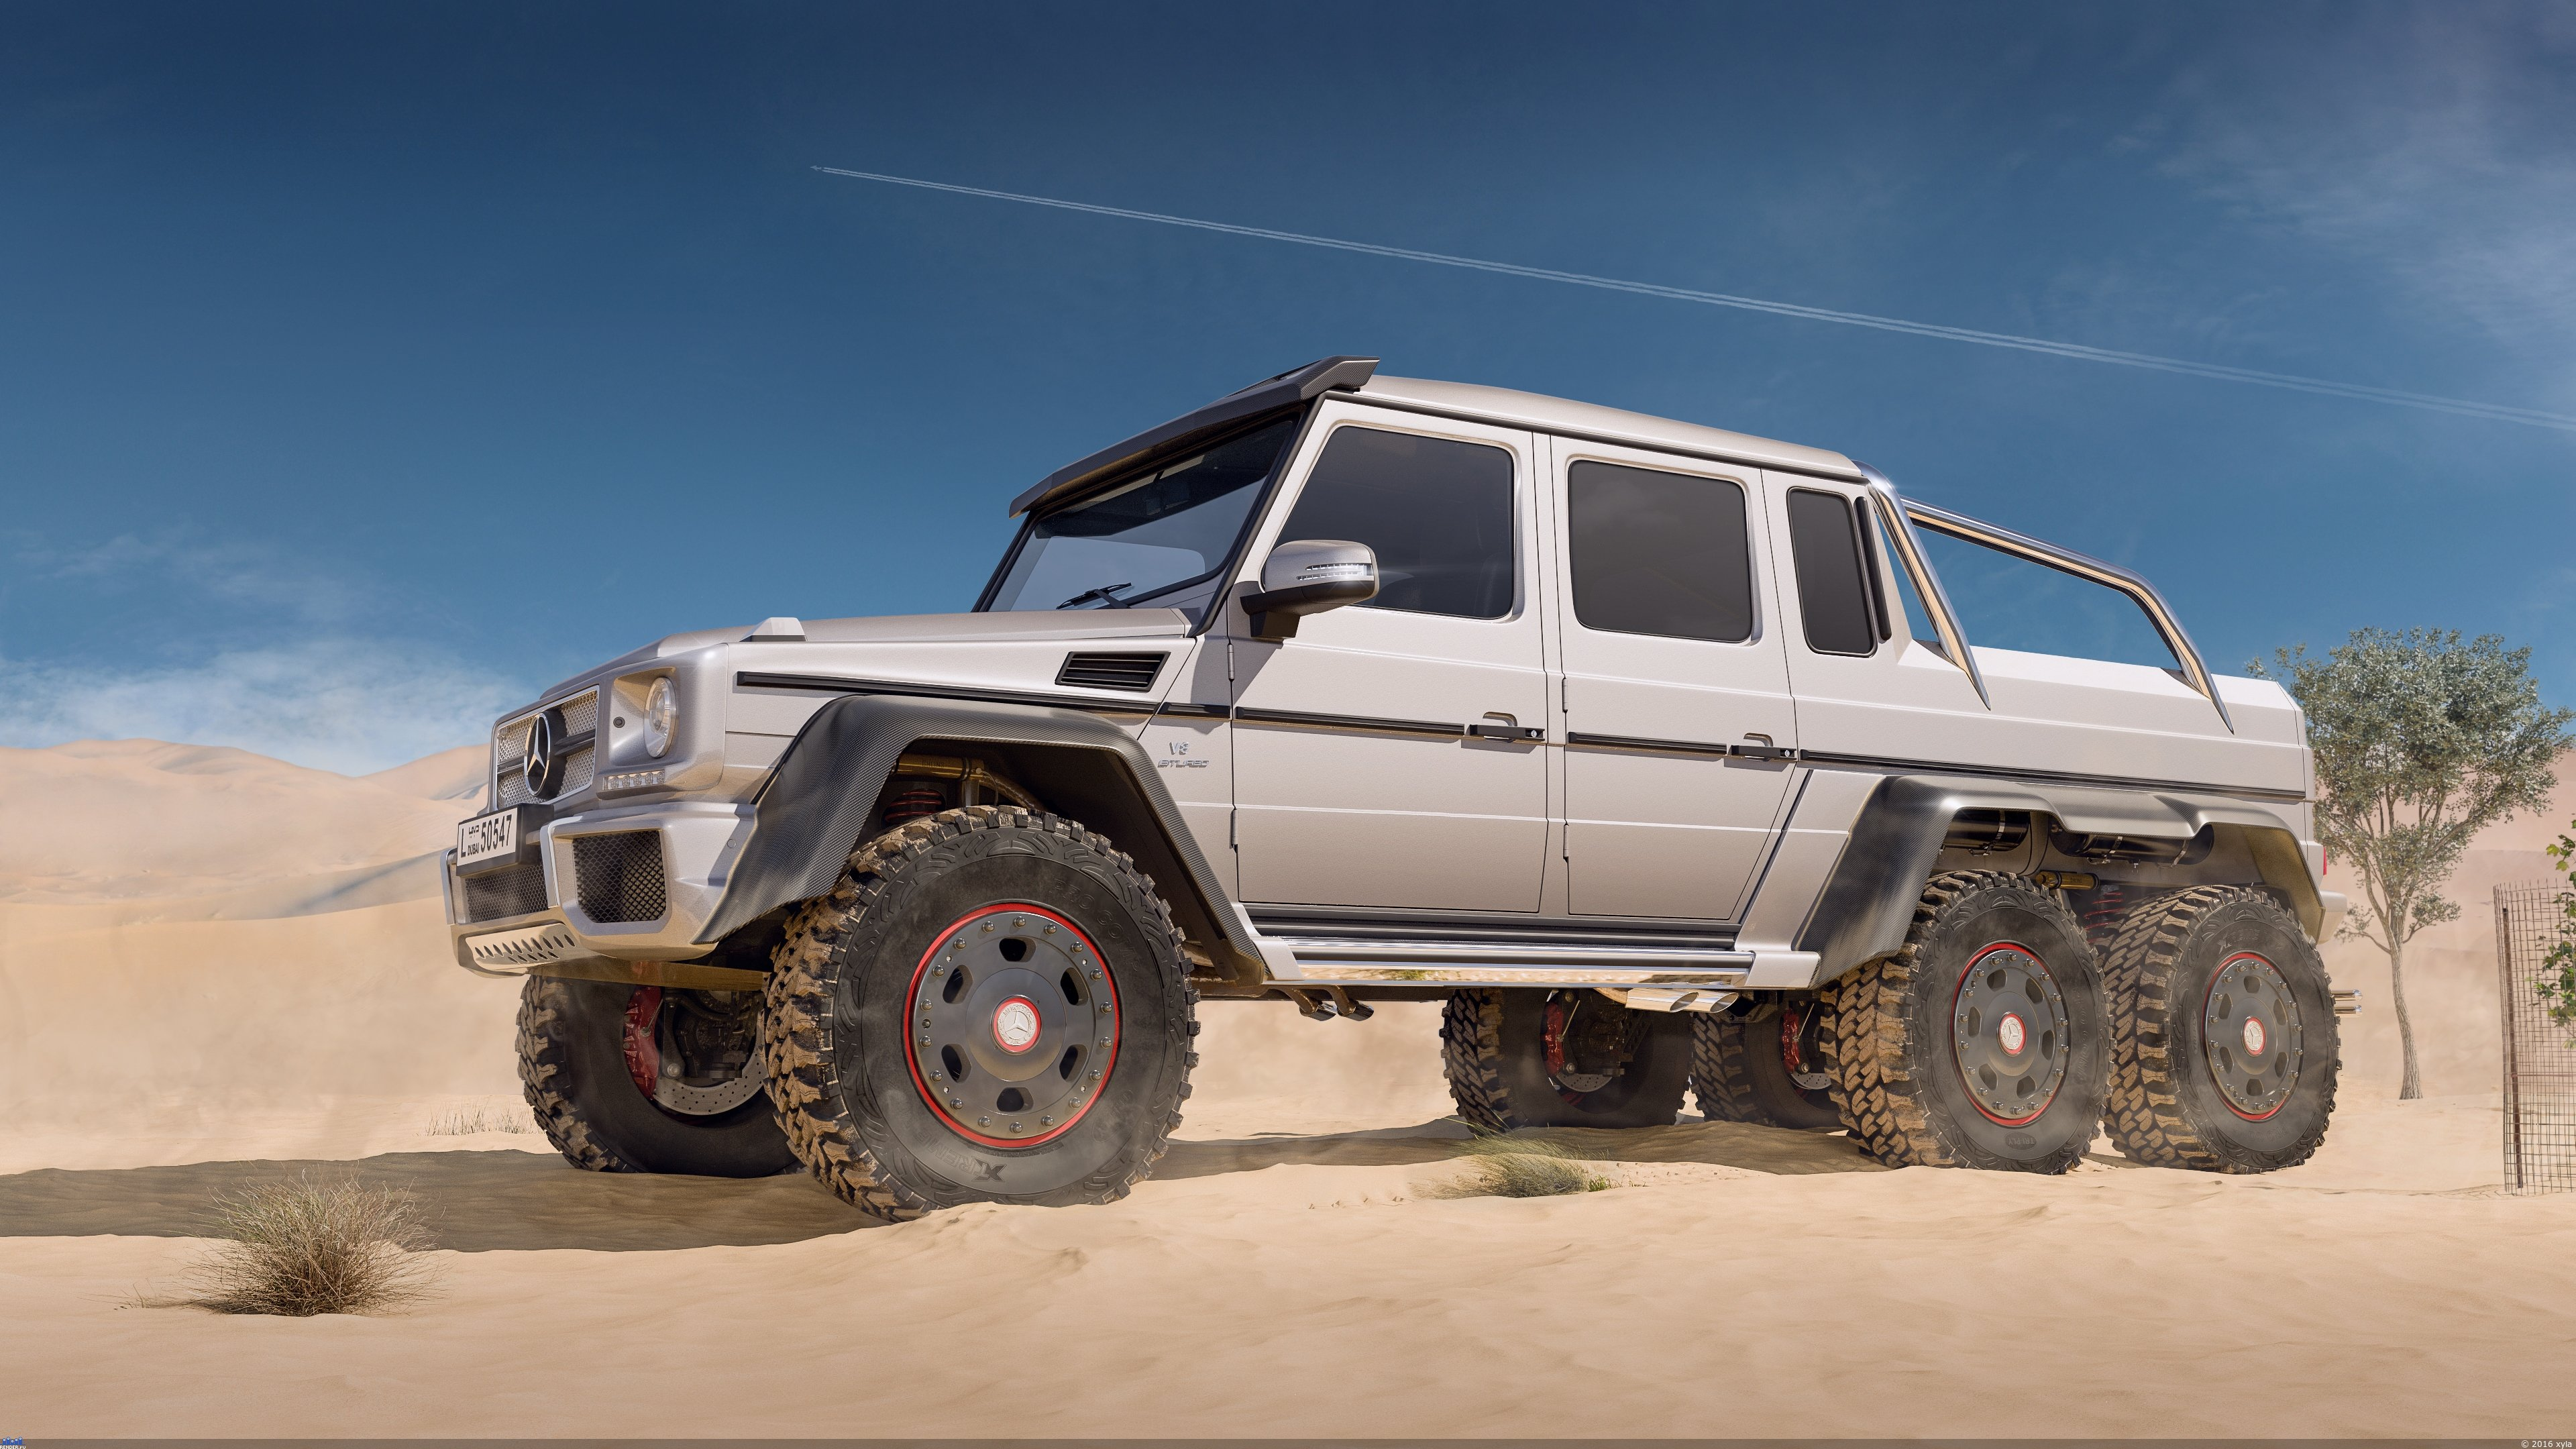 Mercedes Benz Amg G63 6x6 Hd Cars 4k Wallpapers Images